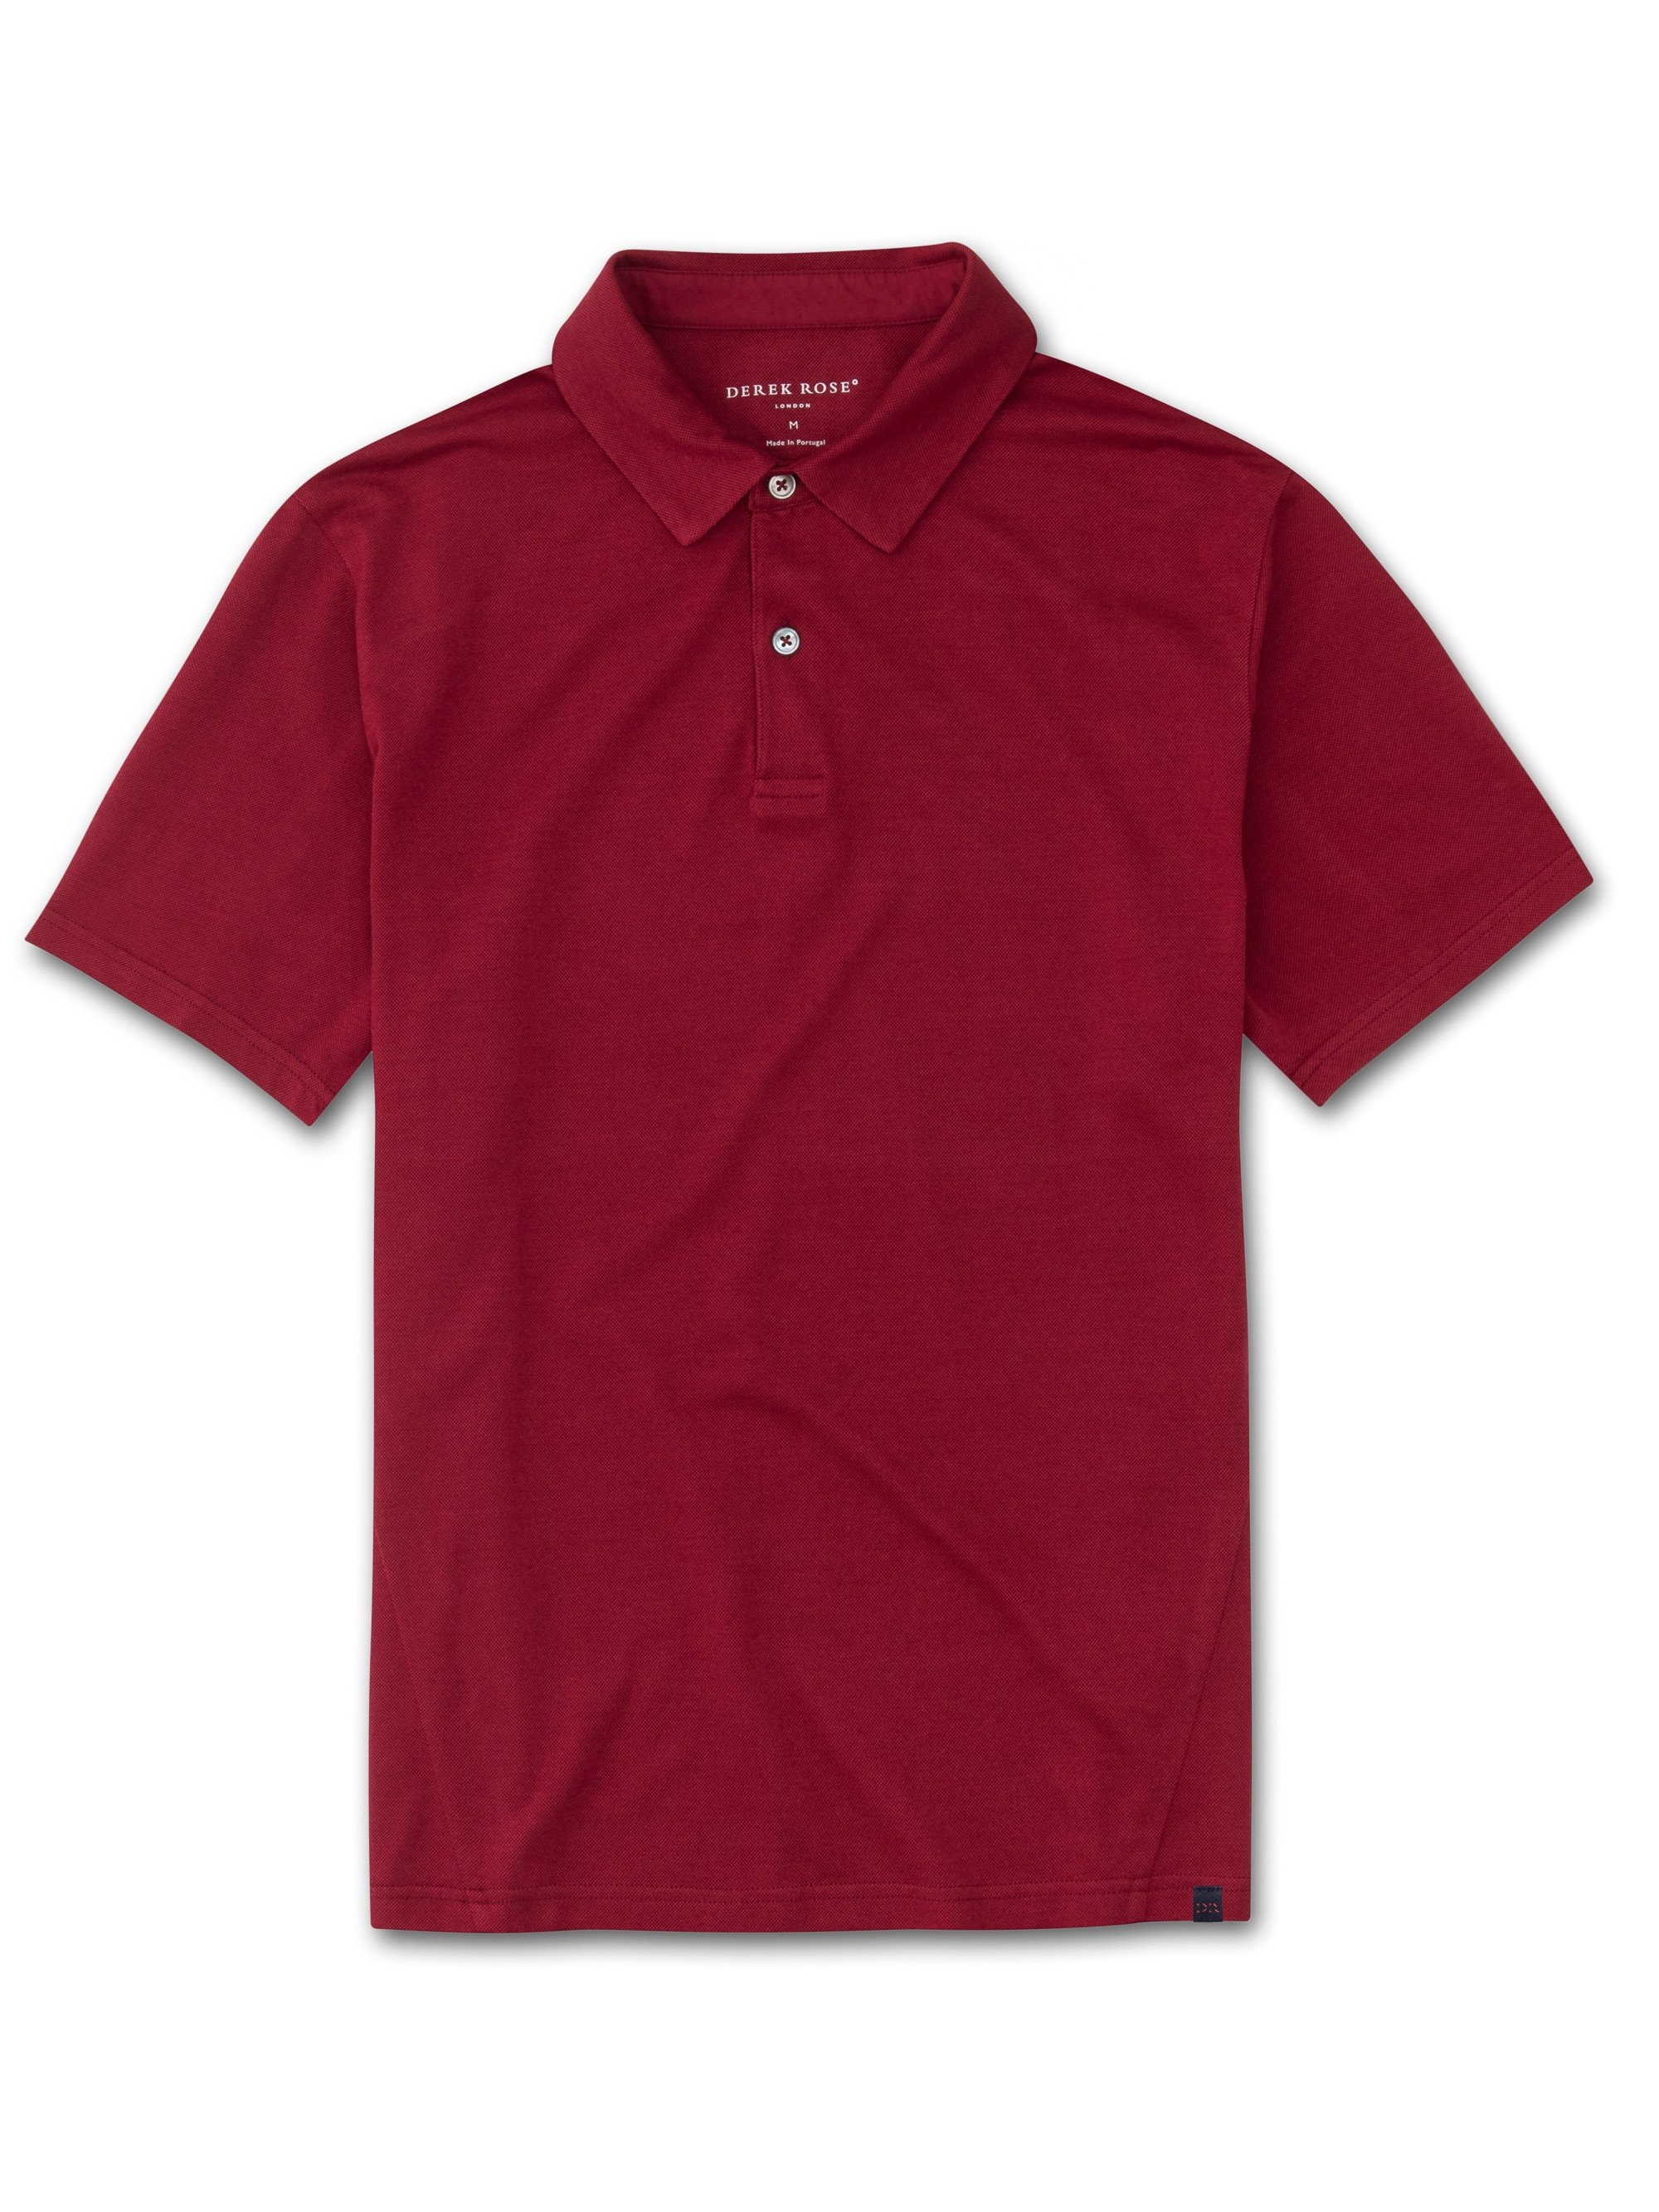 Men's Short Sleeve Polo Shirt Ramsay Pique Cotton Tencel Red